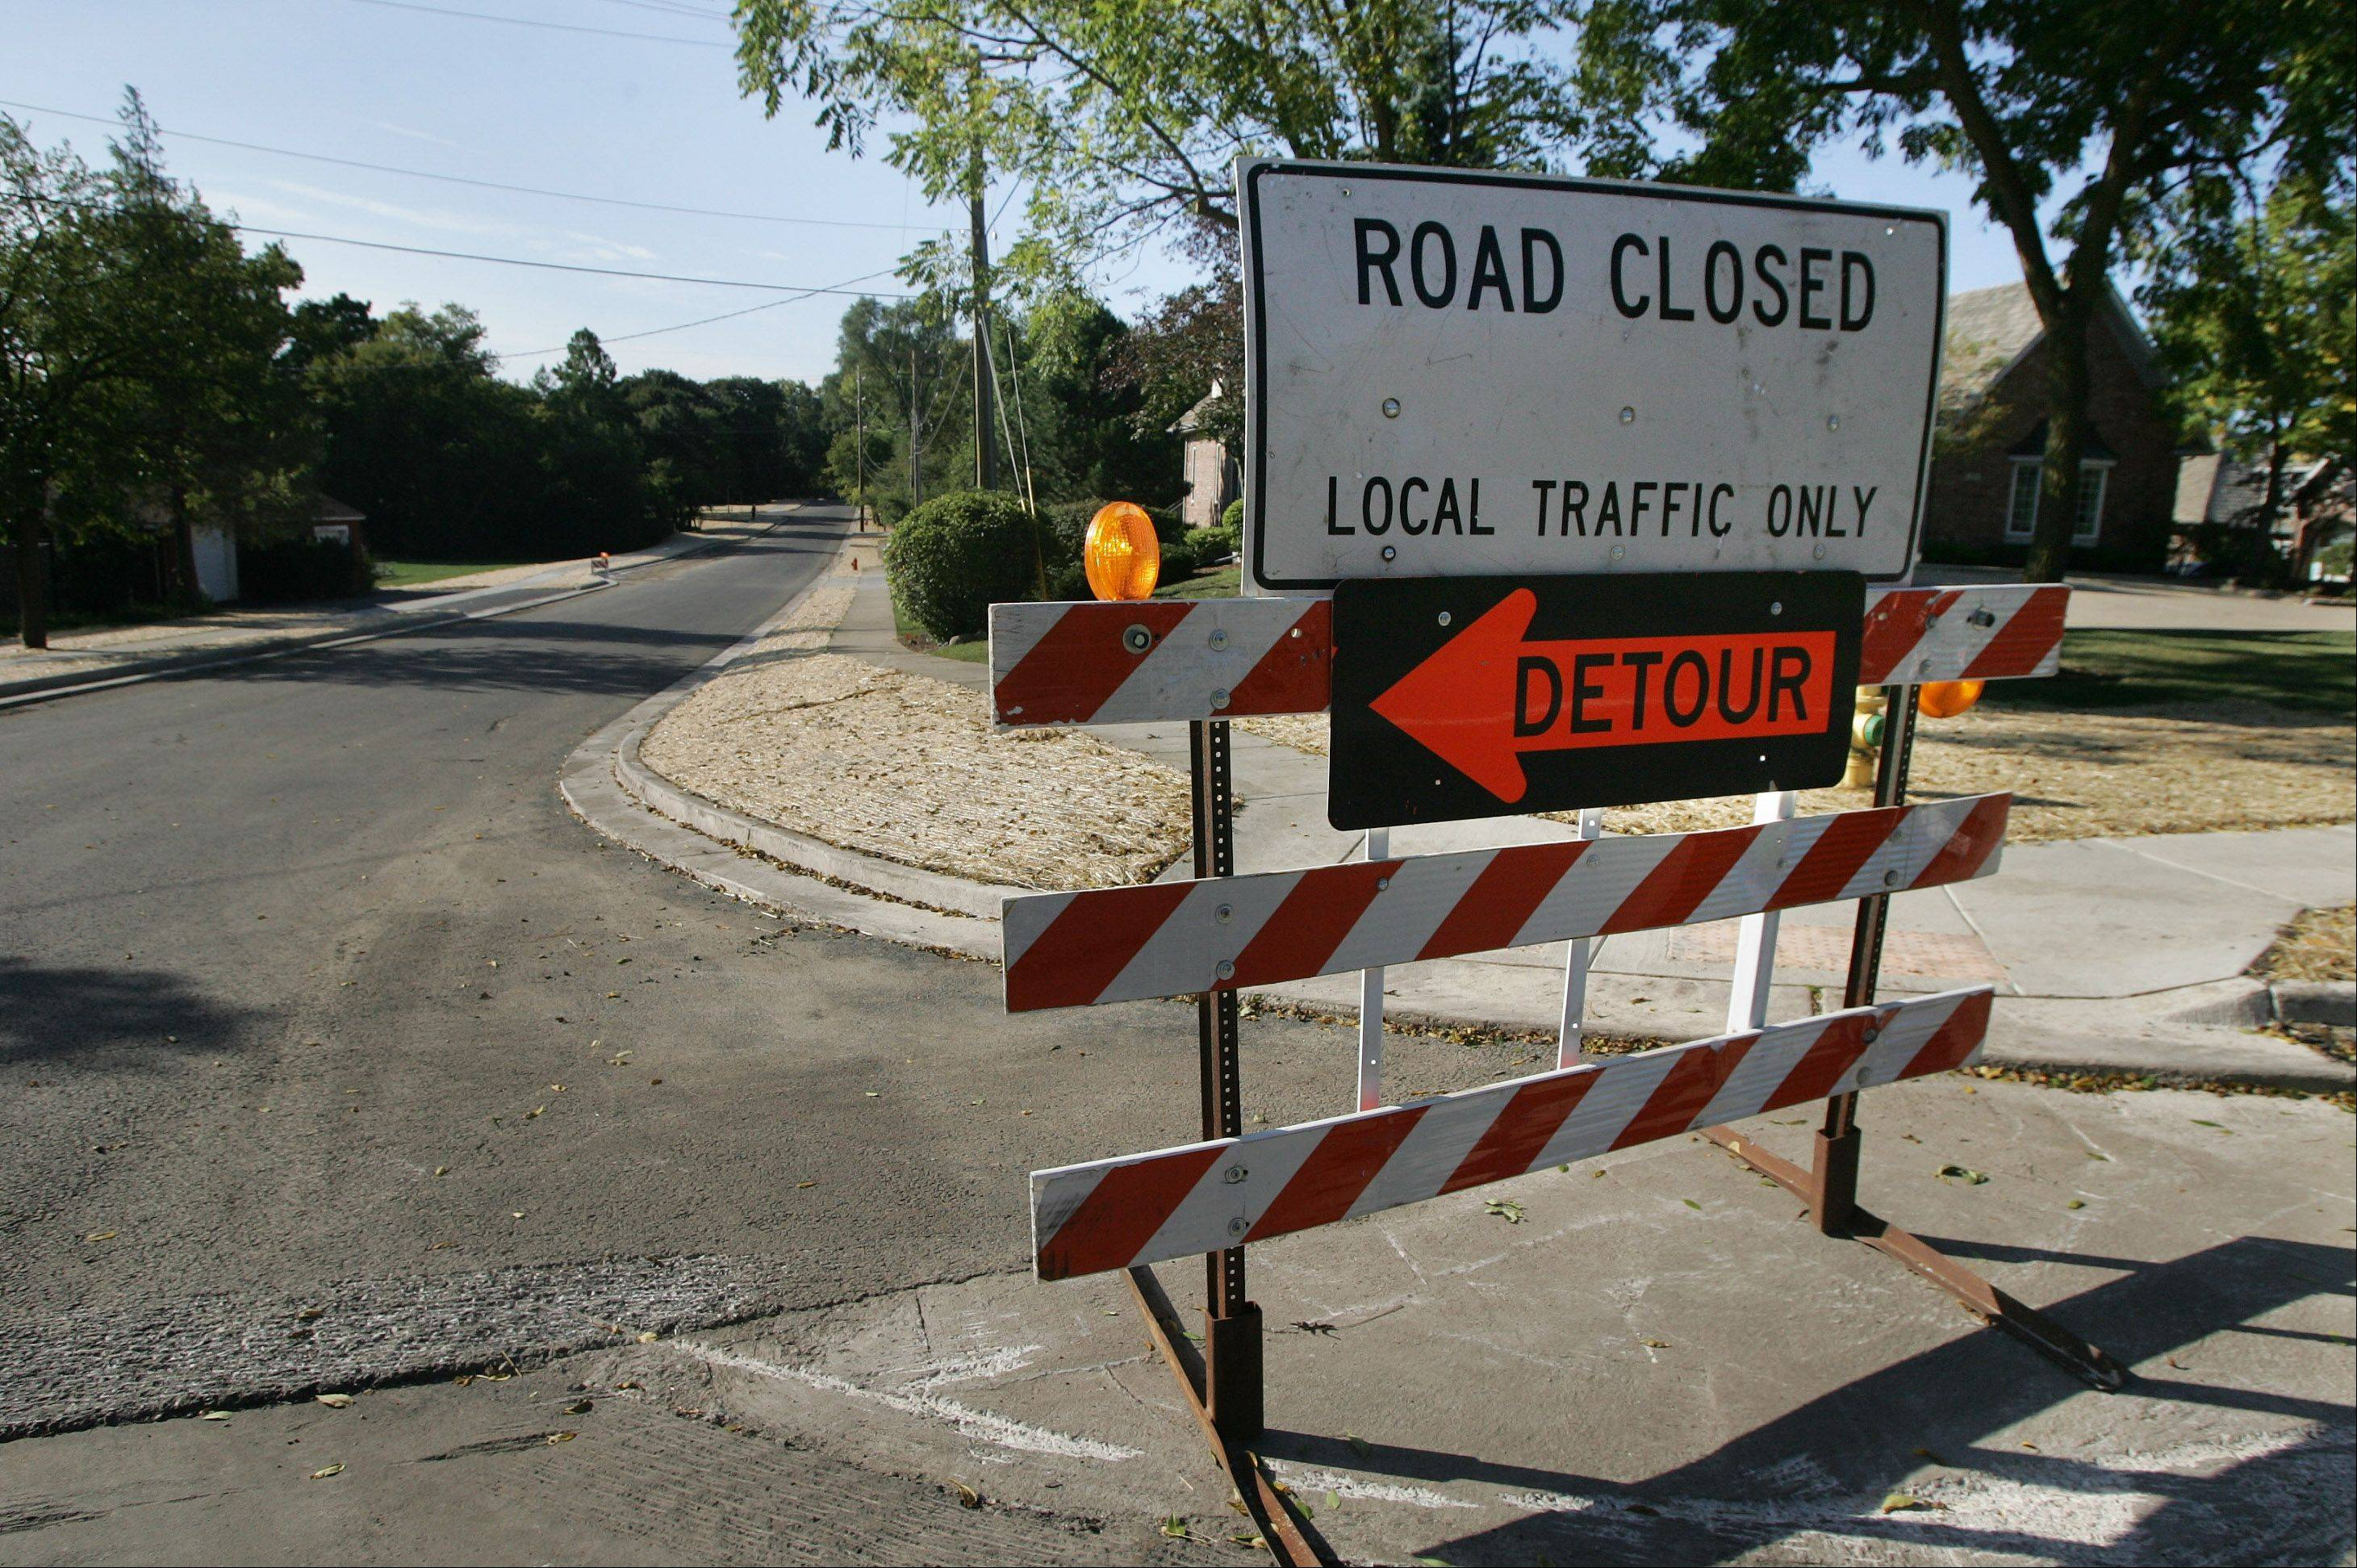 Voters need clear picture on road fix, Libertyville officials say